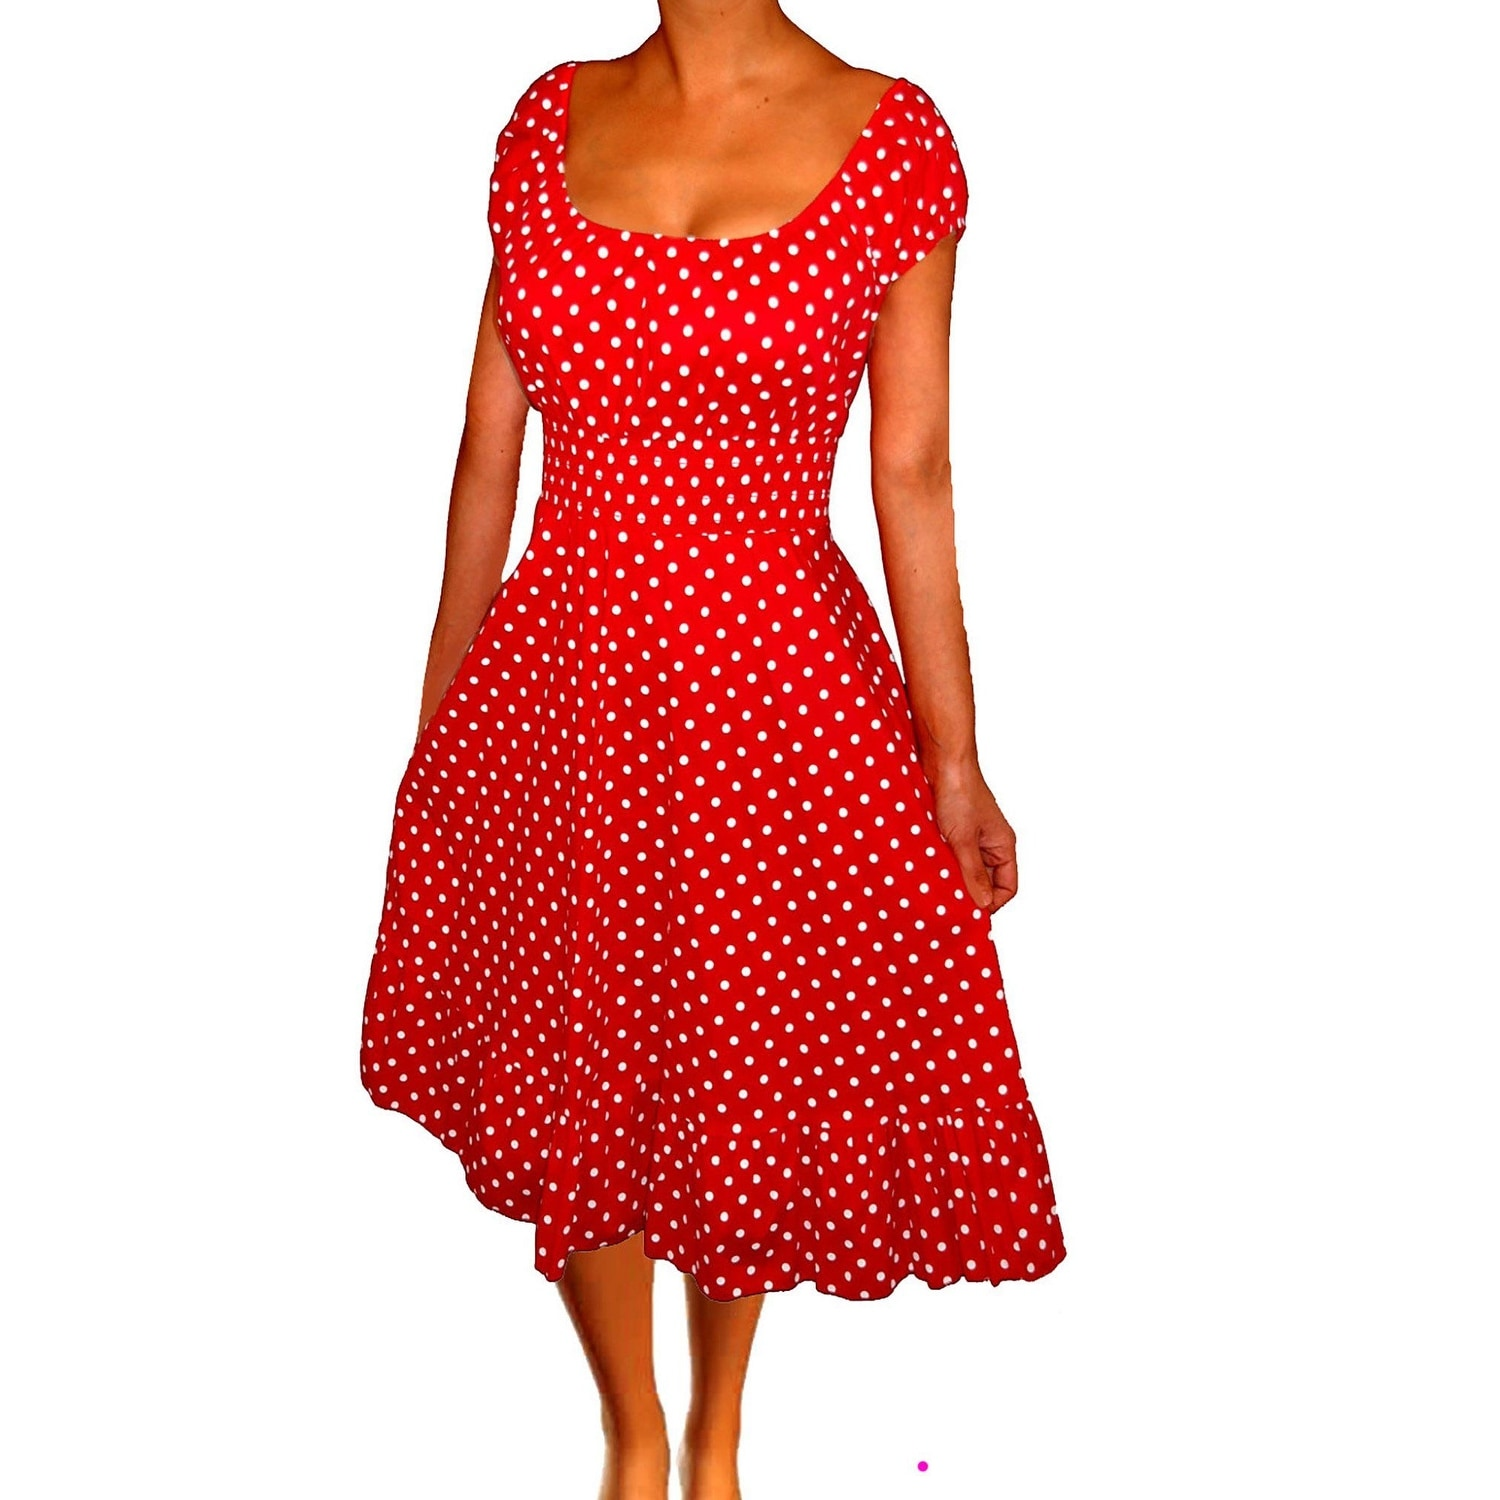 Funfash Women Plus Size Dress Red White Polka Dots Retro Rockabilly